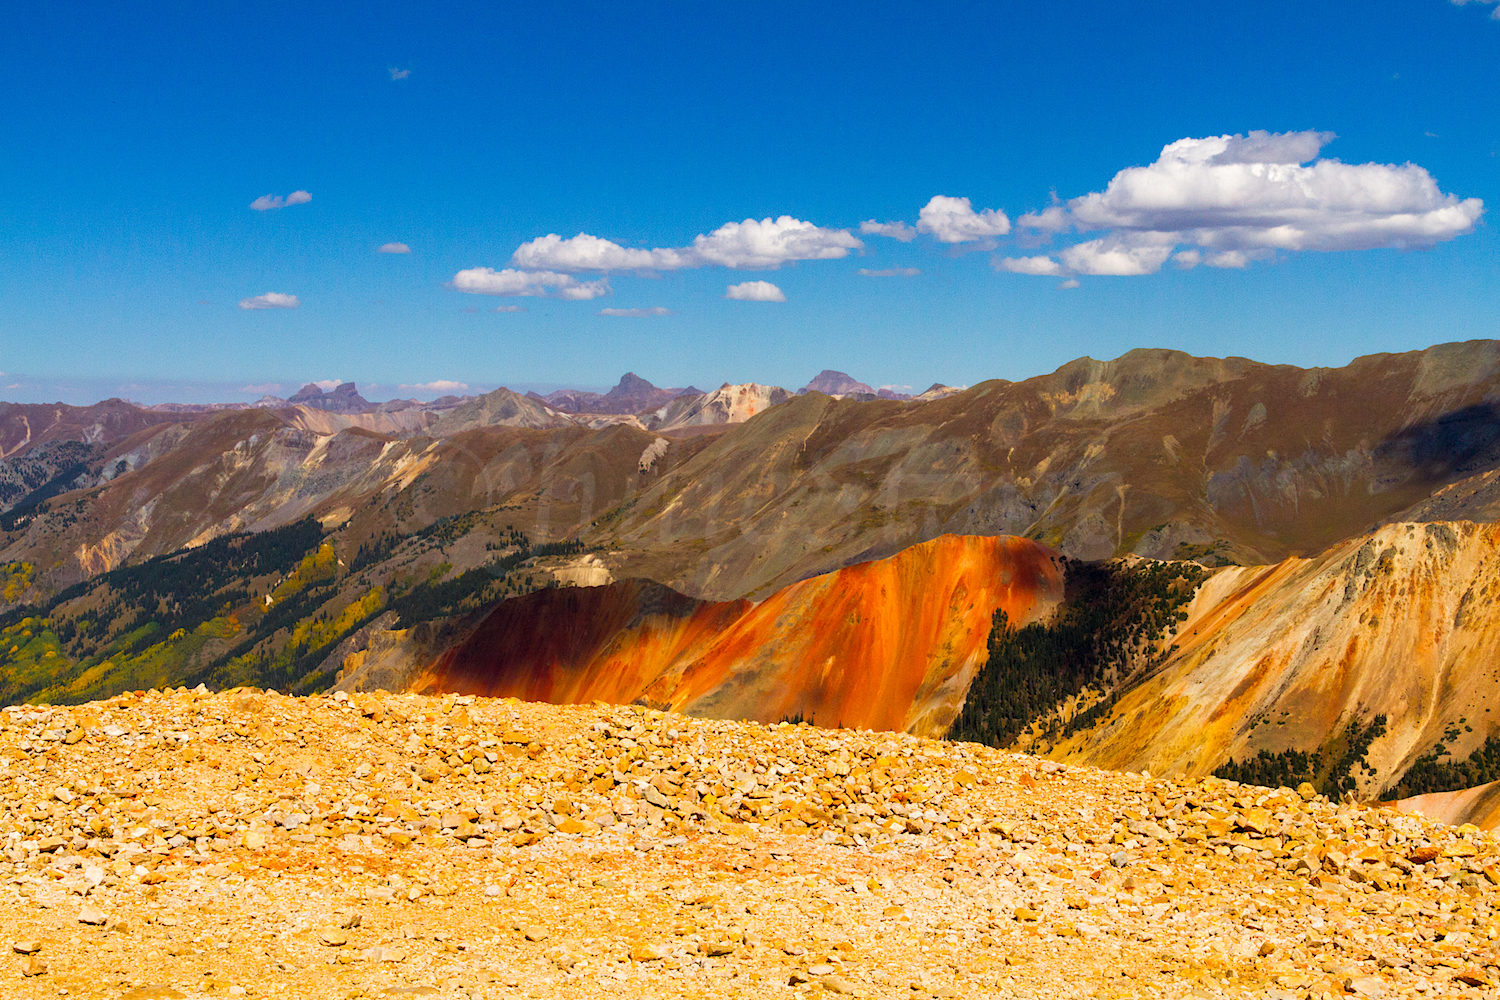 Red Mountain #3, Image # 6312